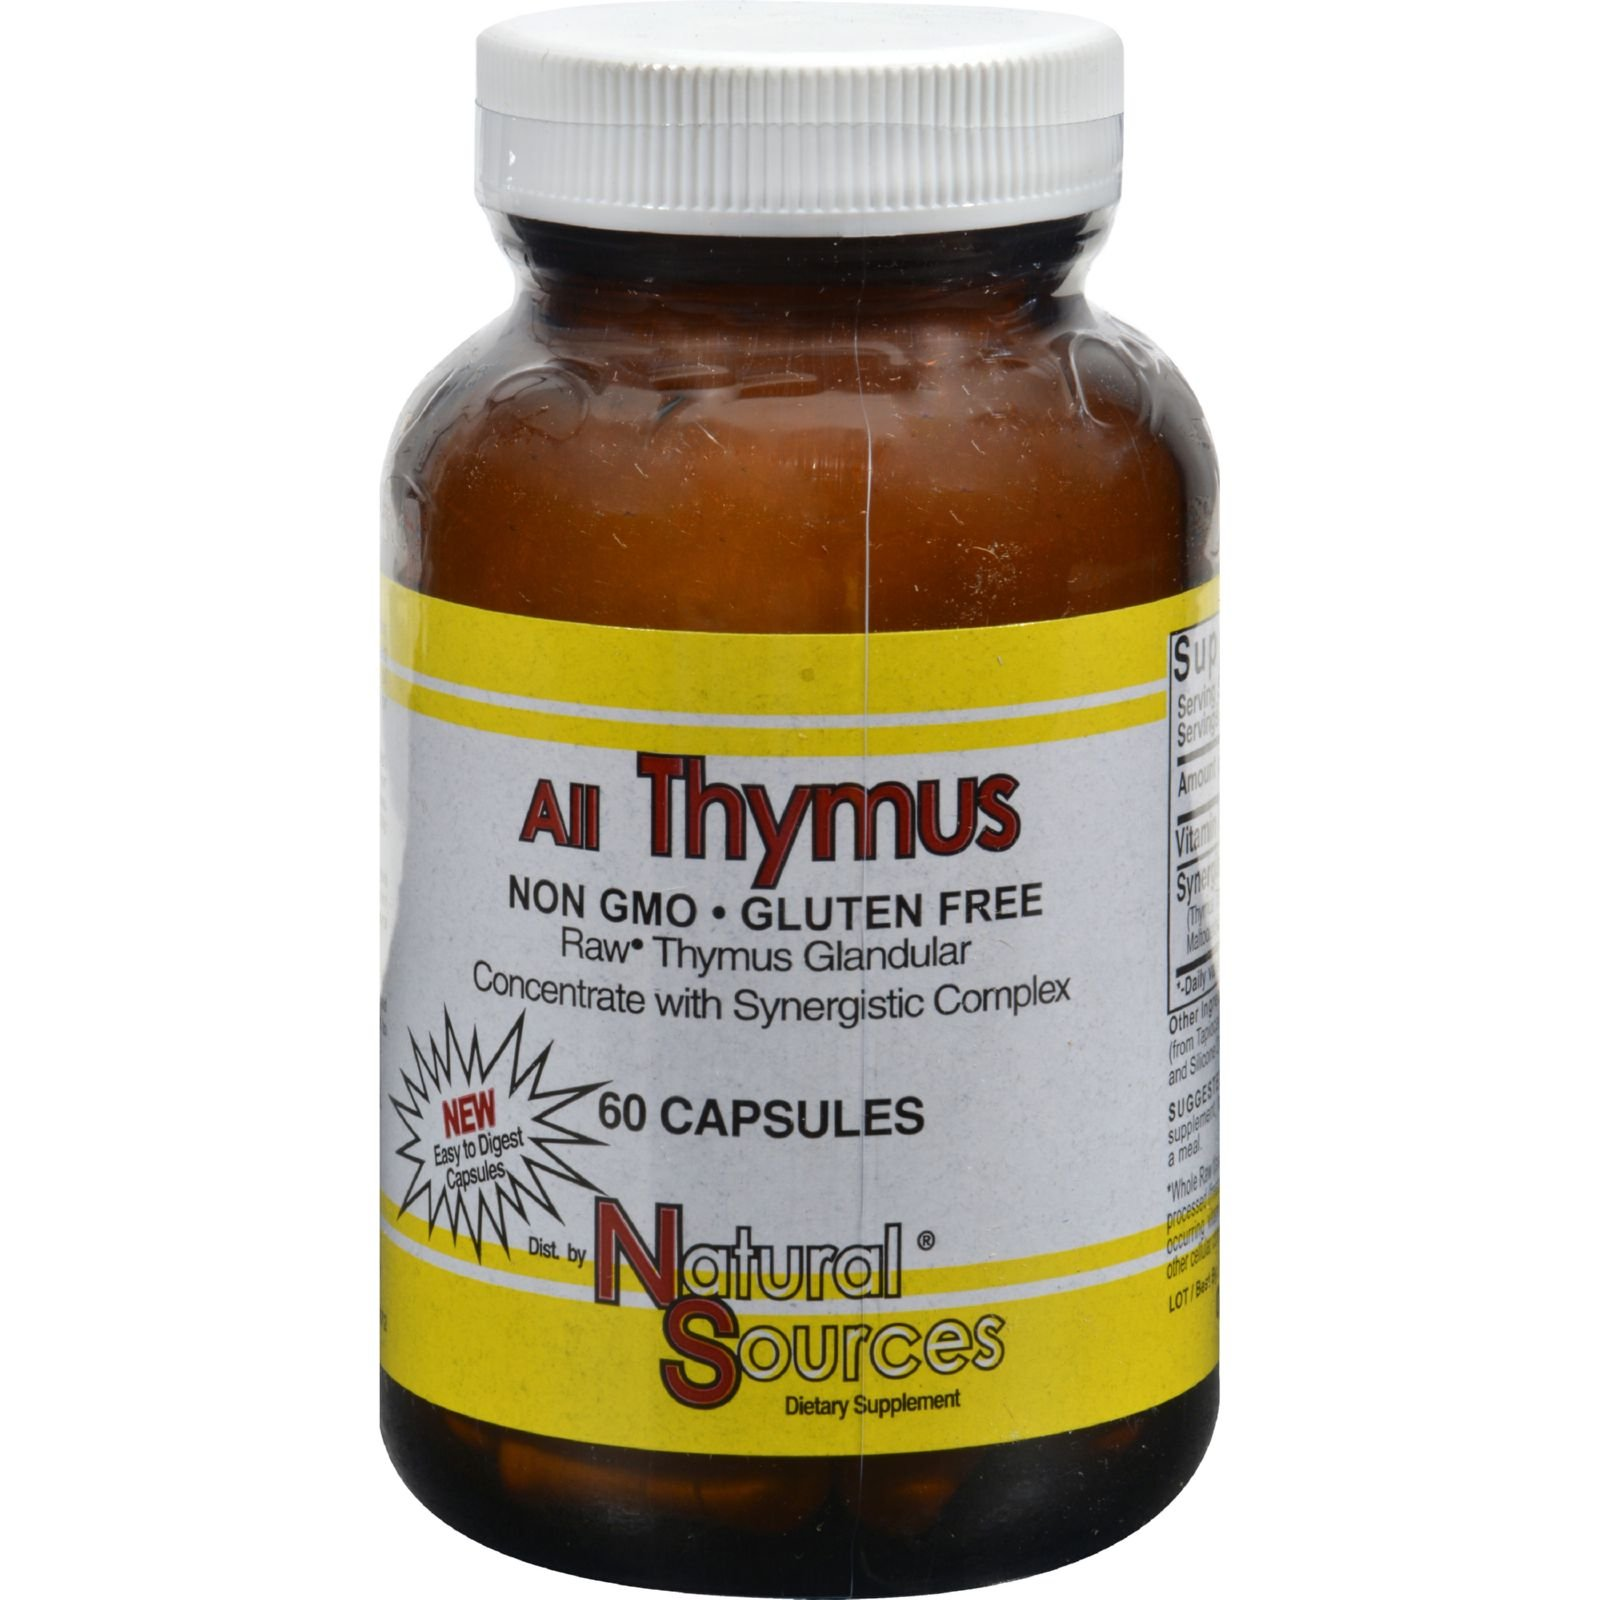 Natural Sources All Thymus - Non GMO - Gluten Free - 60 Capsules (Pack of 2) by Natural Sources